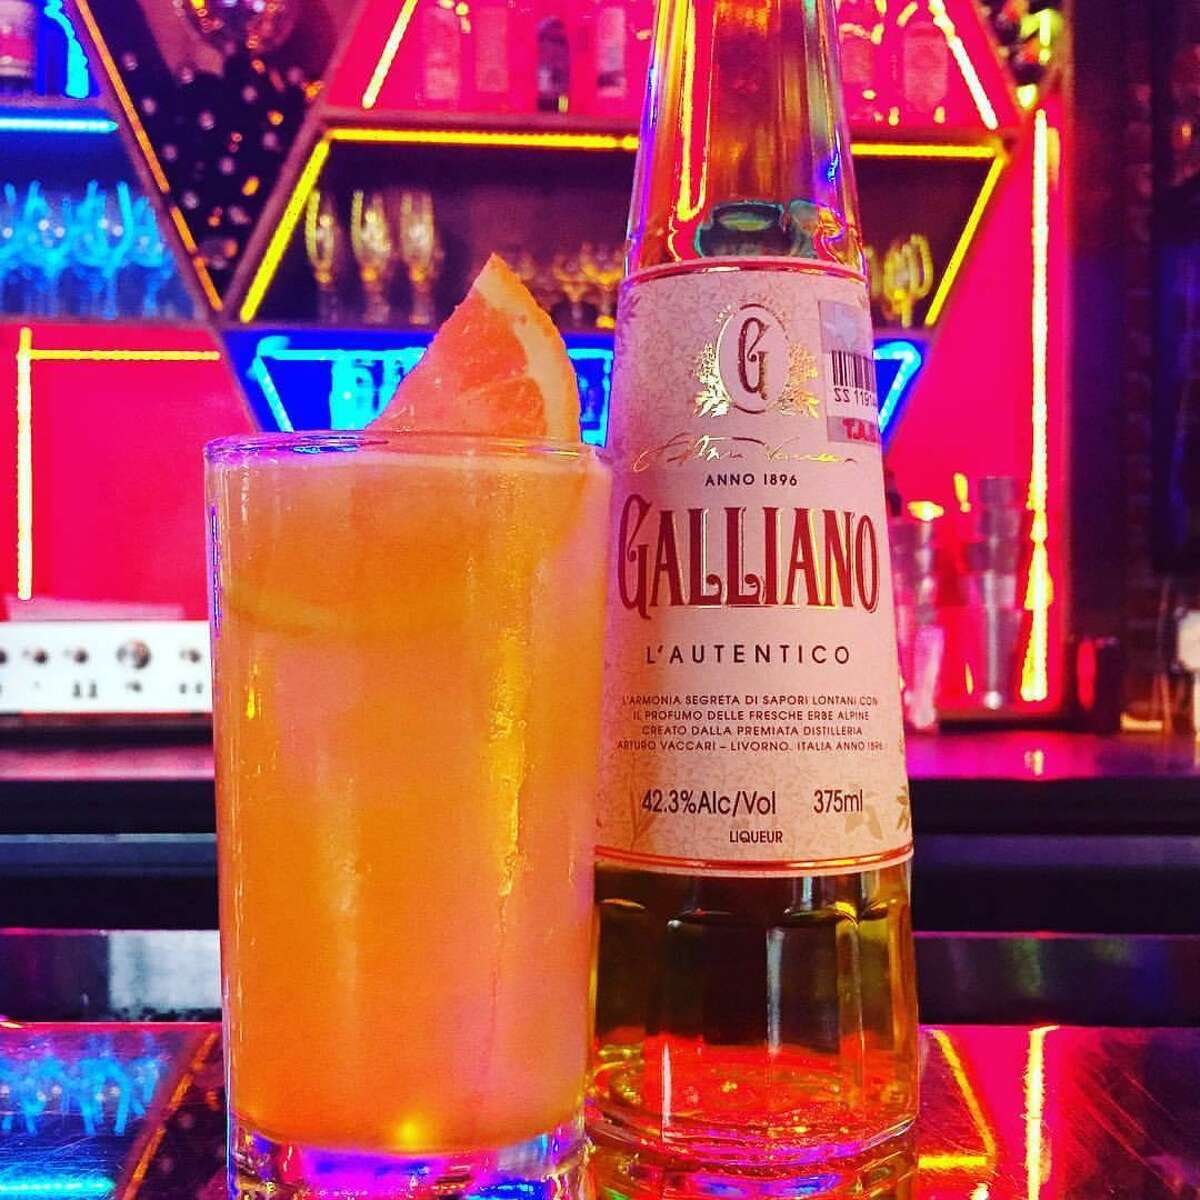 The Harvey Wallbanger is essentially a frat party screwdriver with a dab of European sophistication from the herbaceous Italian liqueur Galliano.